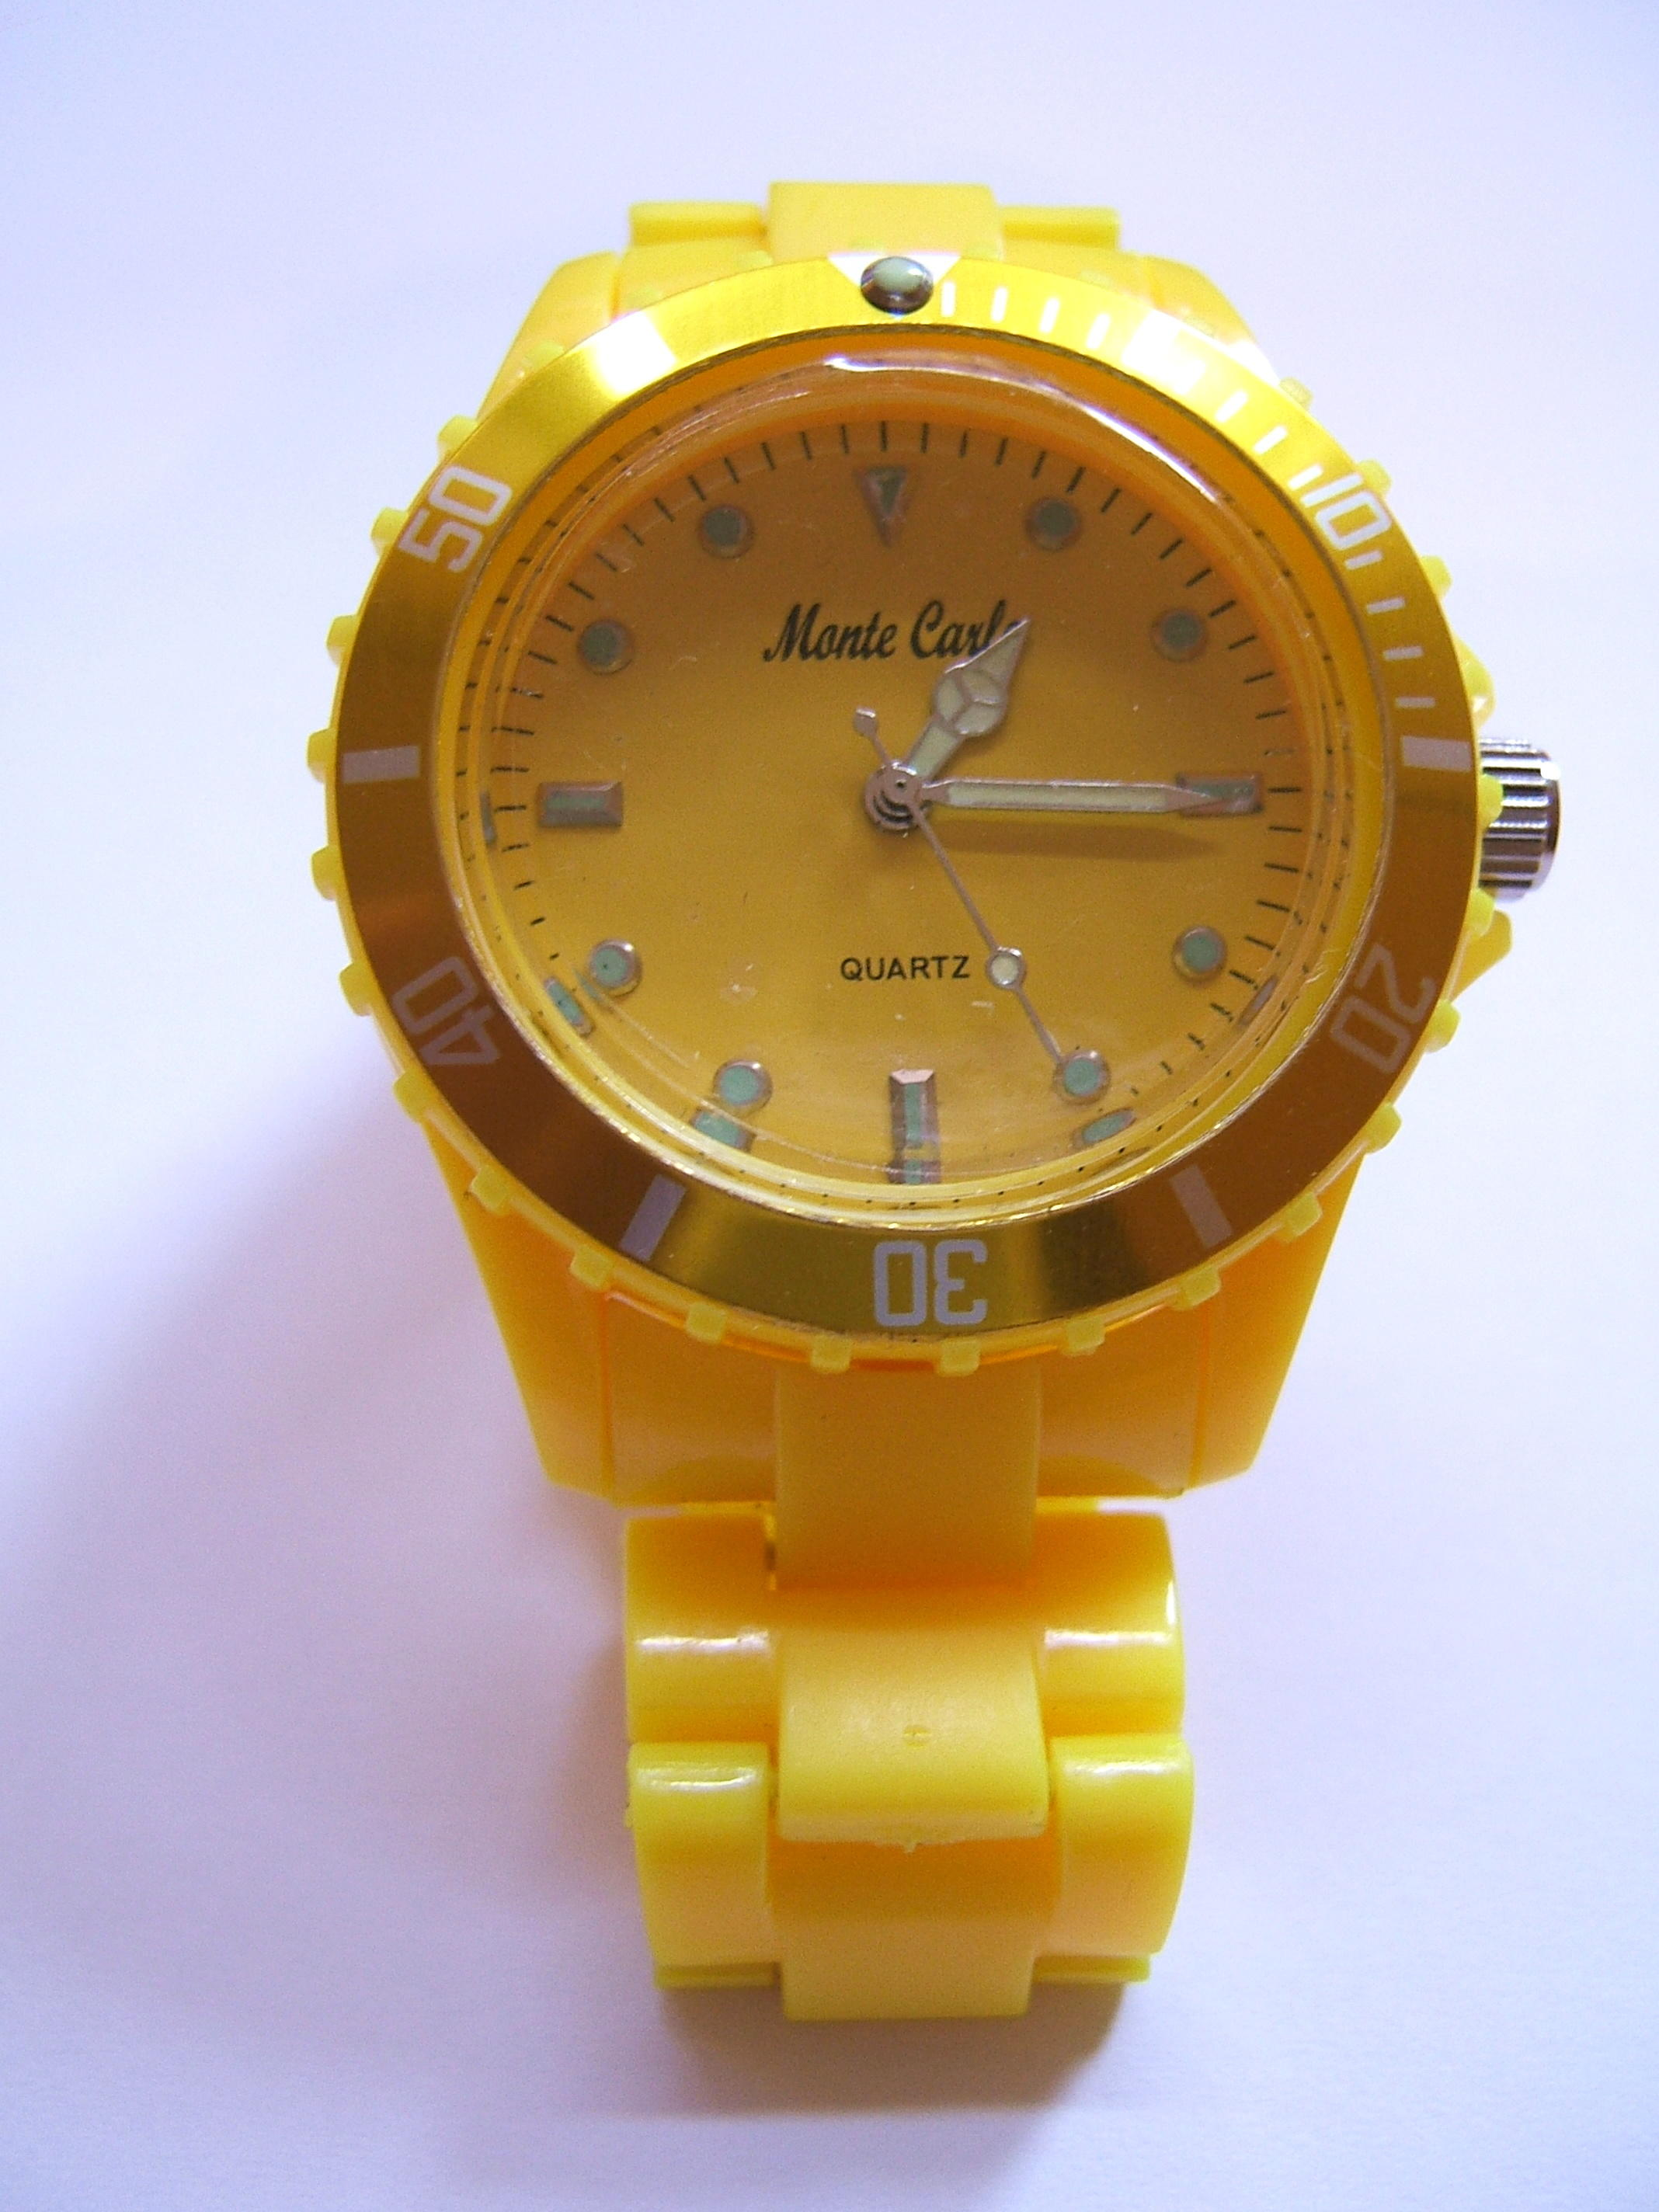 Monte Carlo Unisex Fashion Watch Yellow